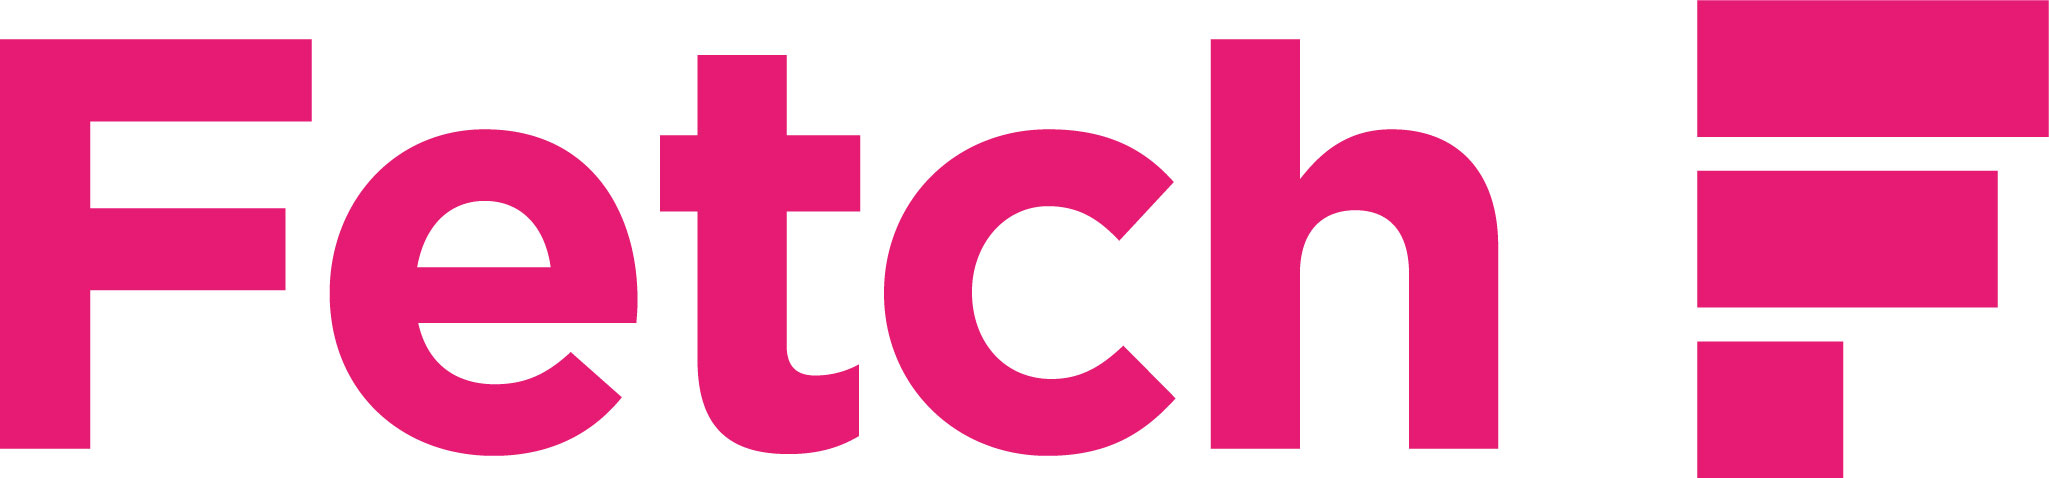 fetch-media-logo.jpg